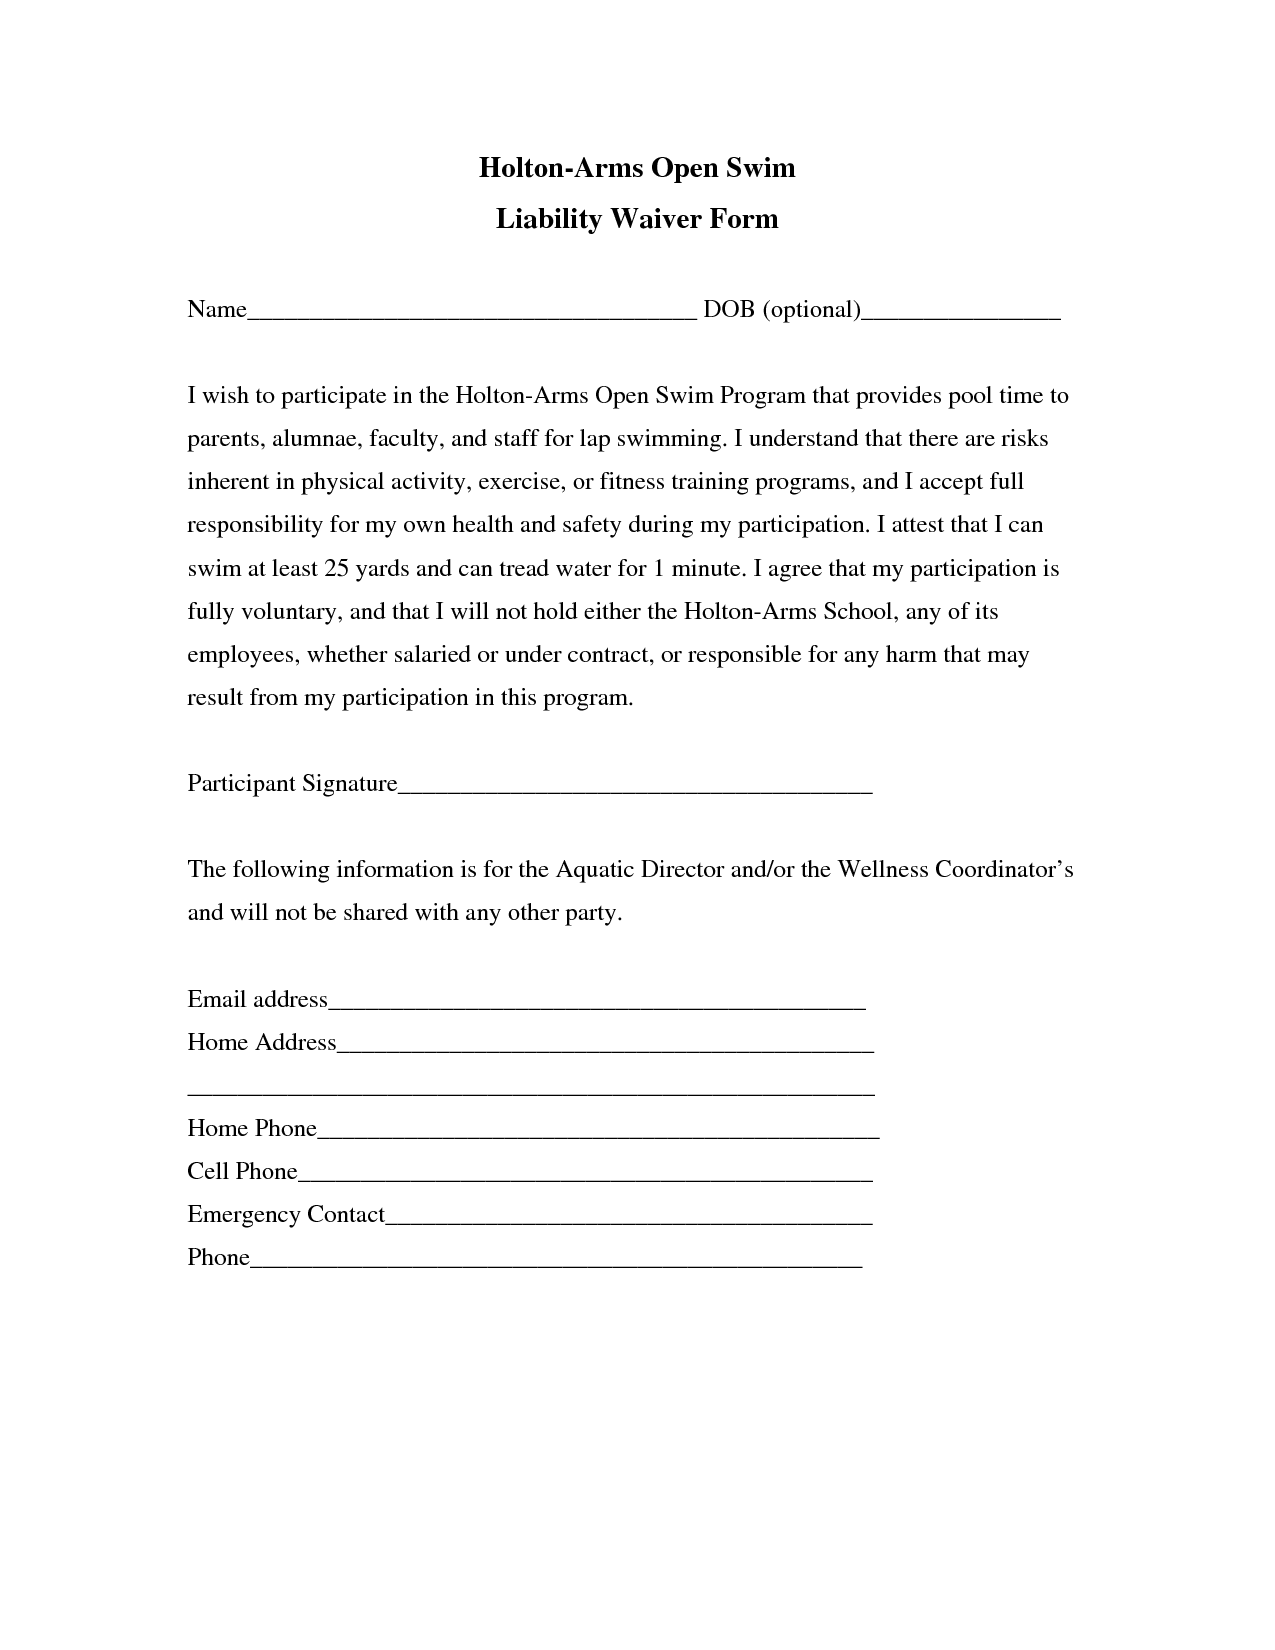 Liability Release Forms Template  Free Printable Liability Release Form